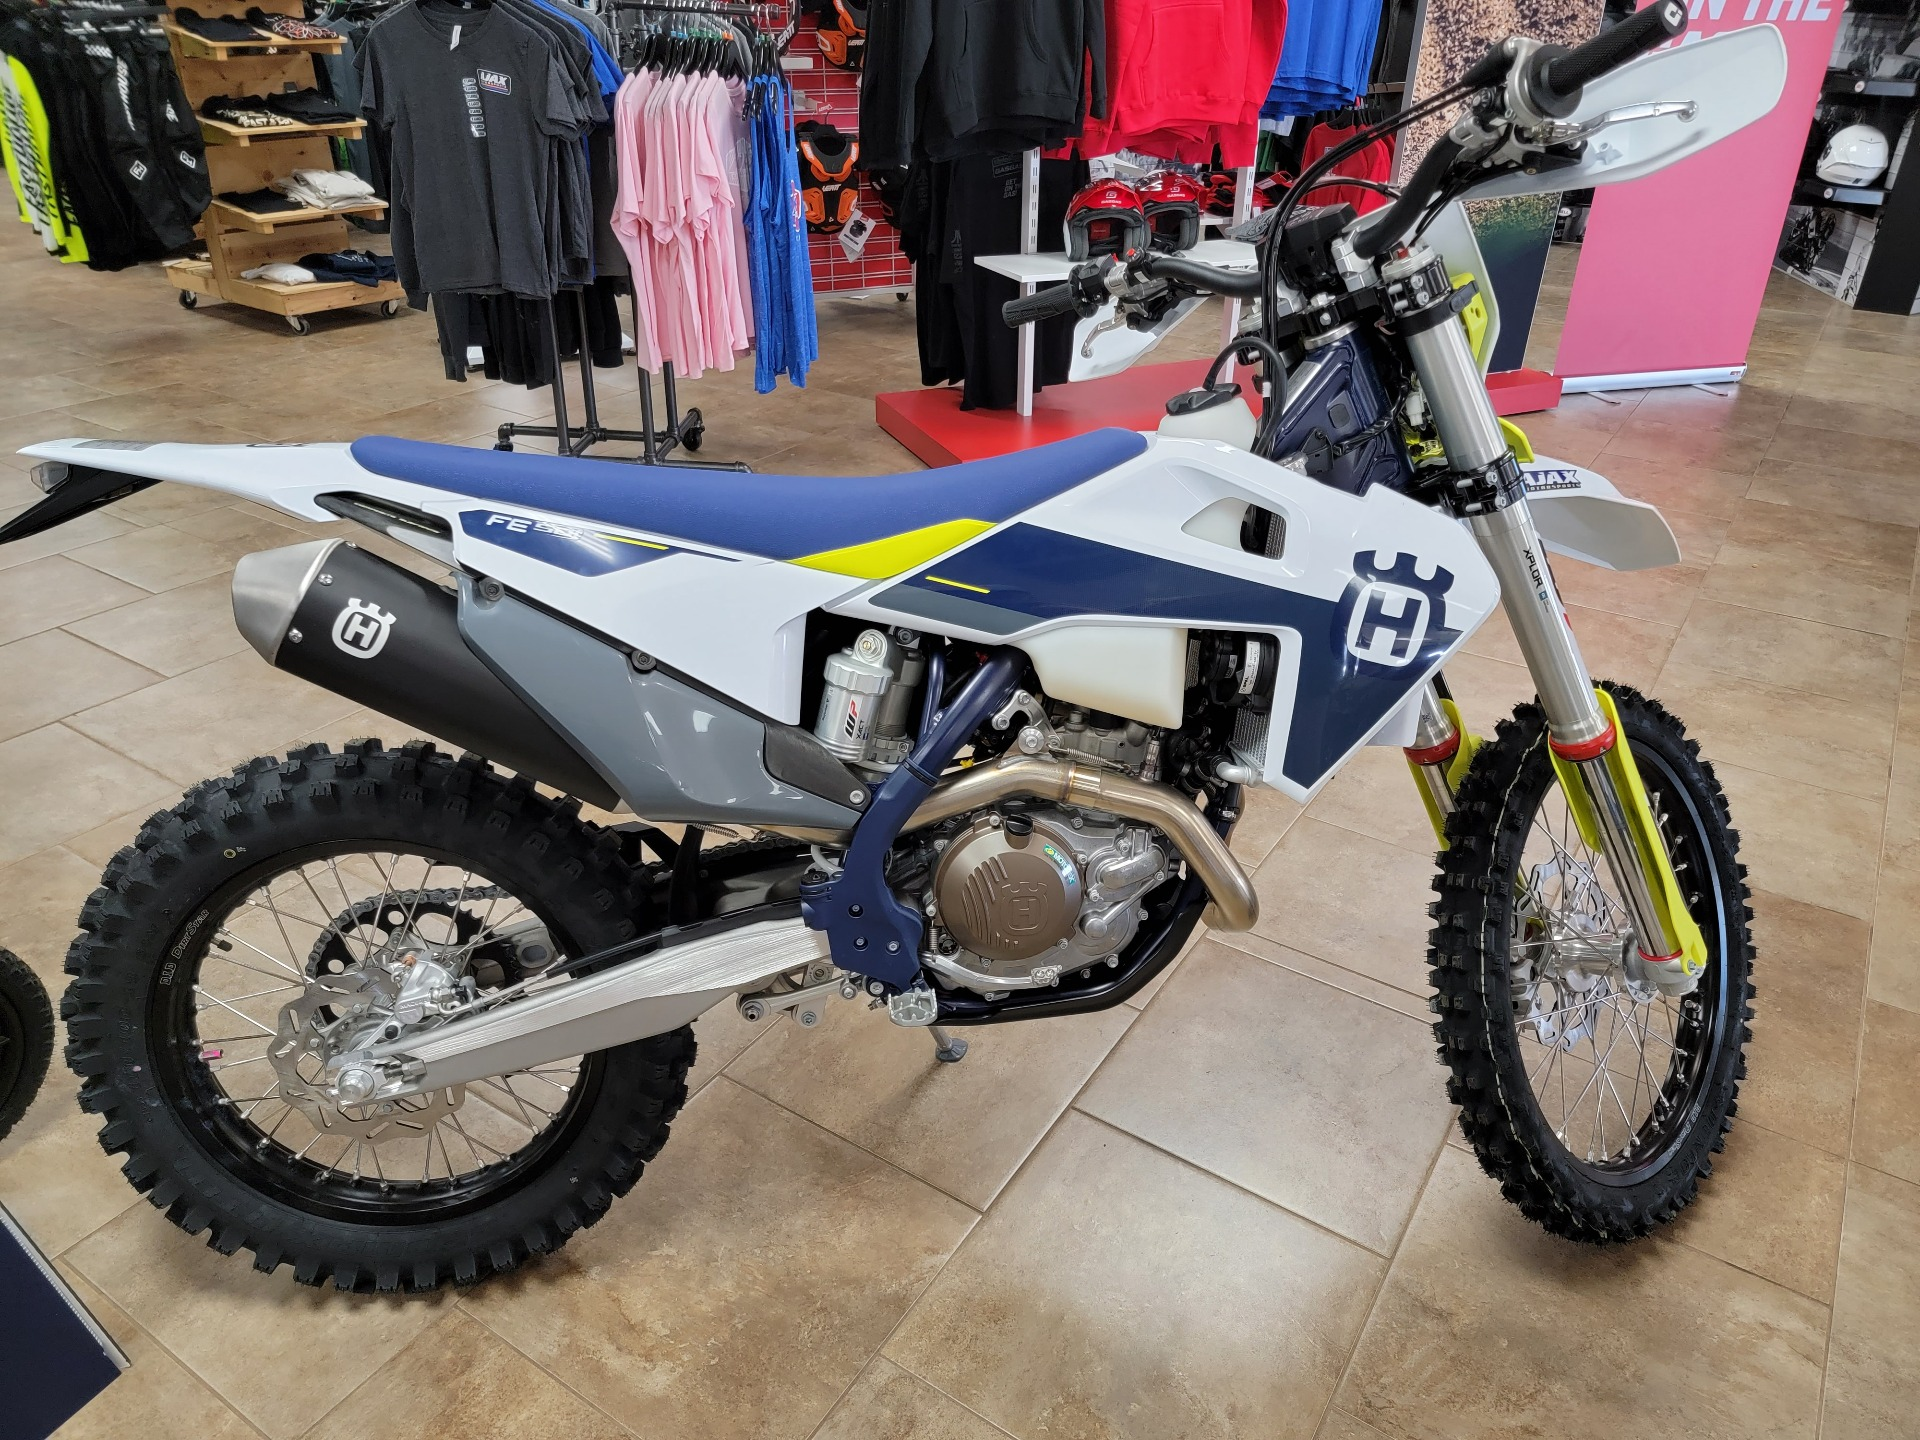 2021 Husqvarna FE 501 in Oklahoma City, Oklahoma - Photo 1